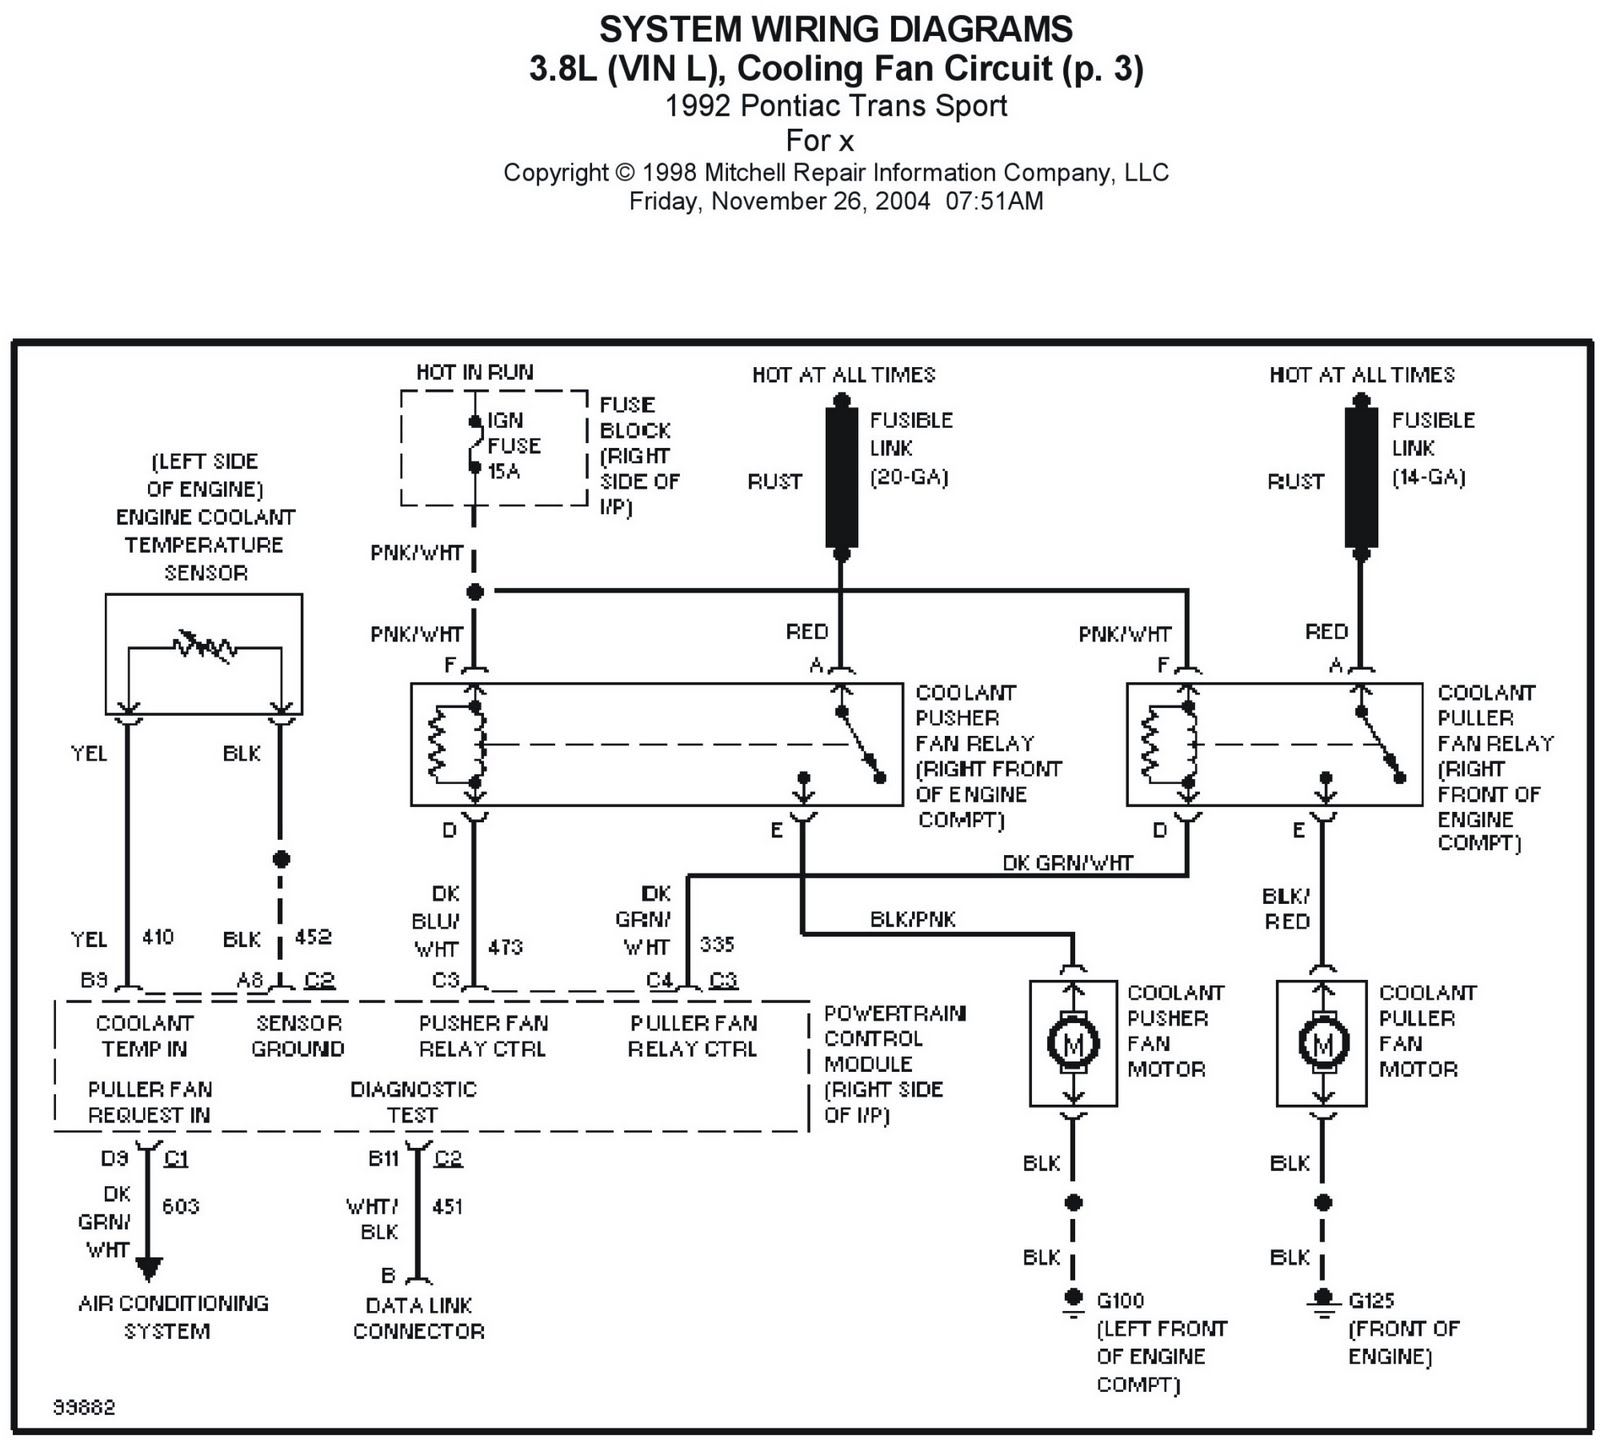 small resolution of wiring diagram for 2002 trans am wiring schematic1995 trans am fuse diagram wiring library 1980 trans